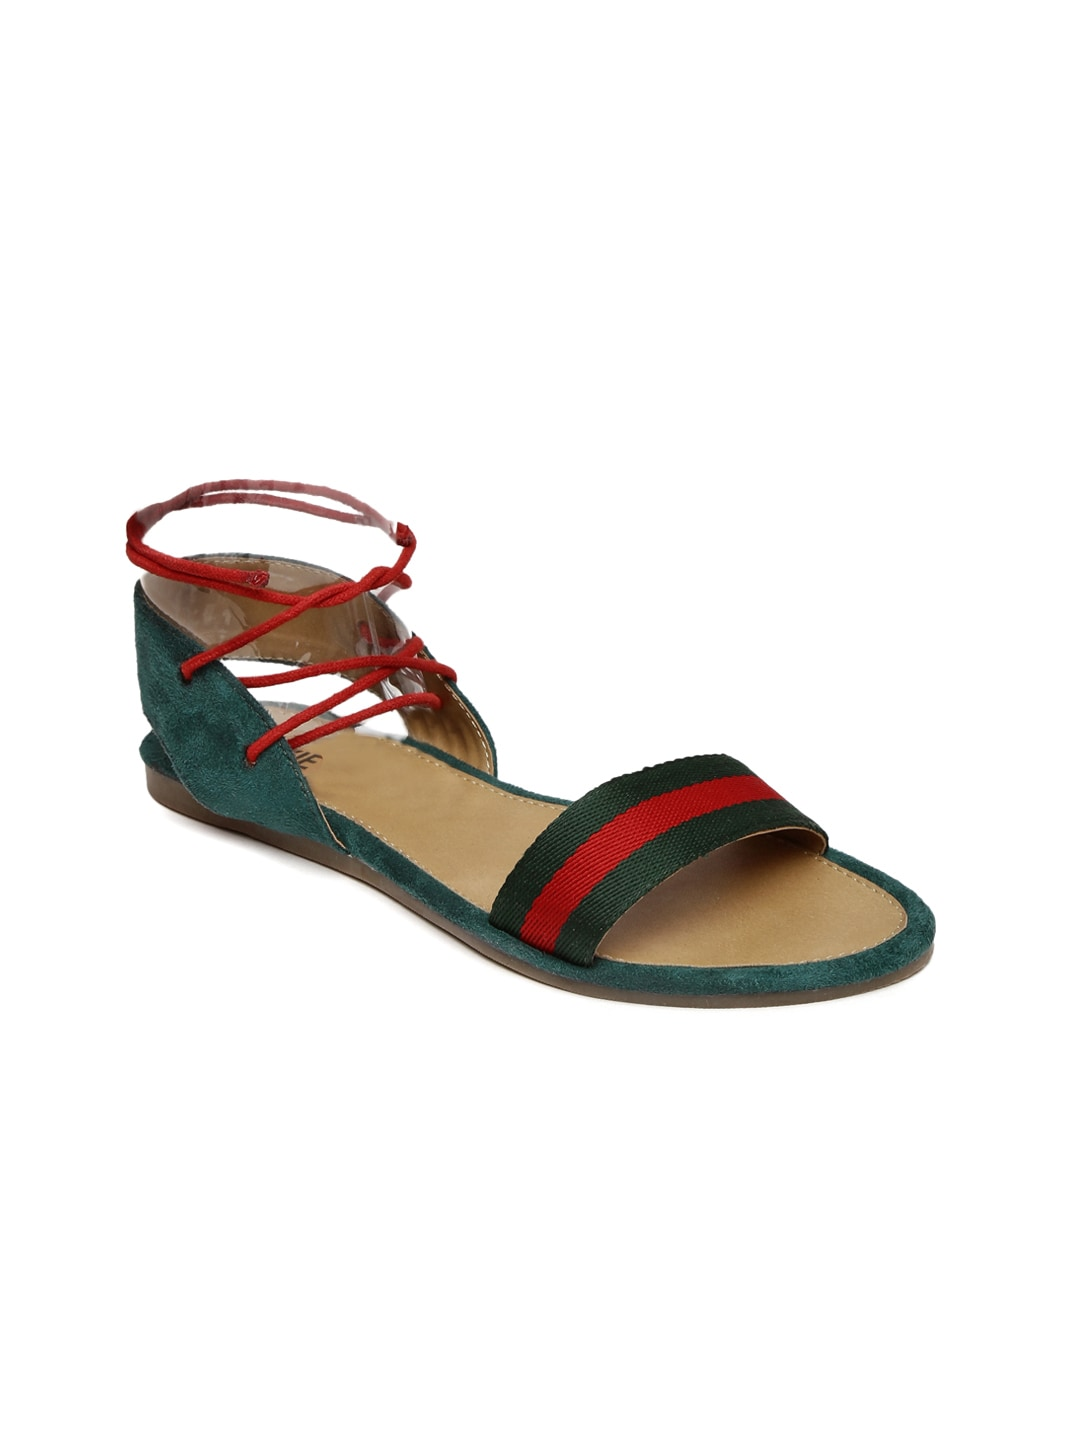 80beebddfbd5 Lavie Shoes - Buy Lavie Shoes online in India